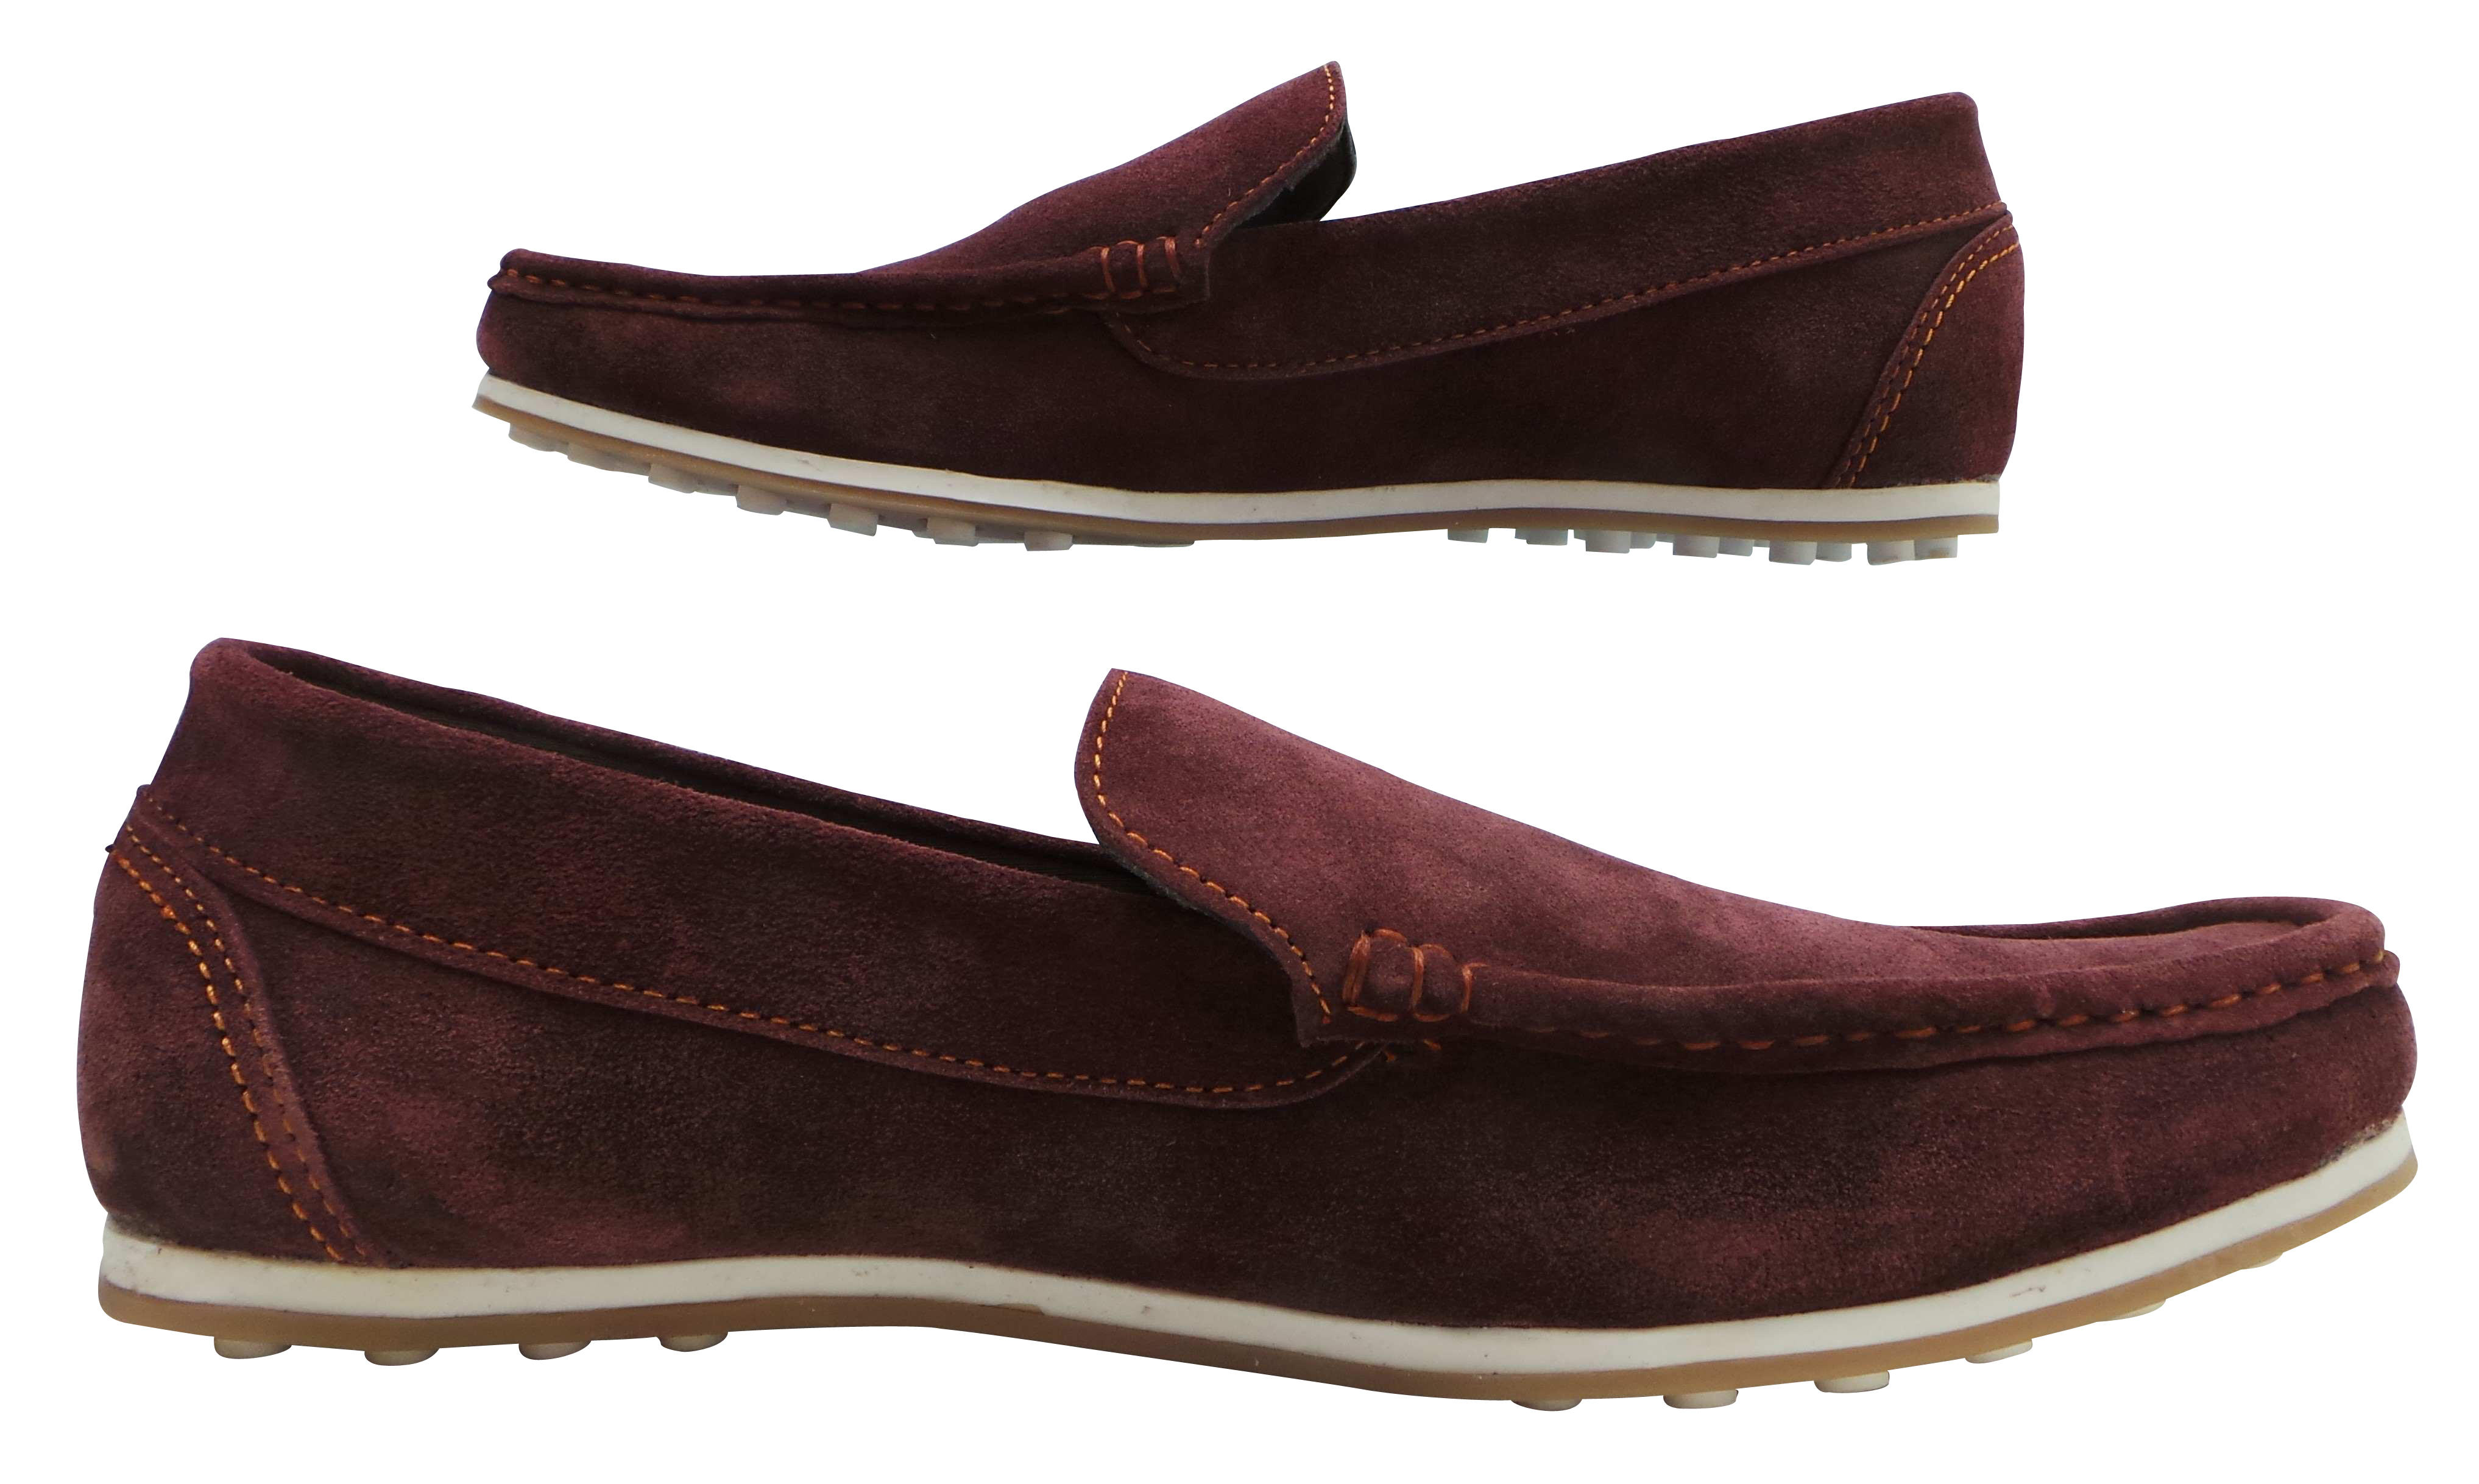 Find great deals on eBay for mens leather loafers. Shop with confidence.